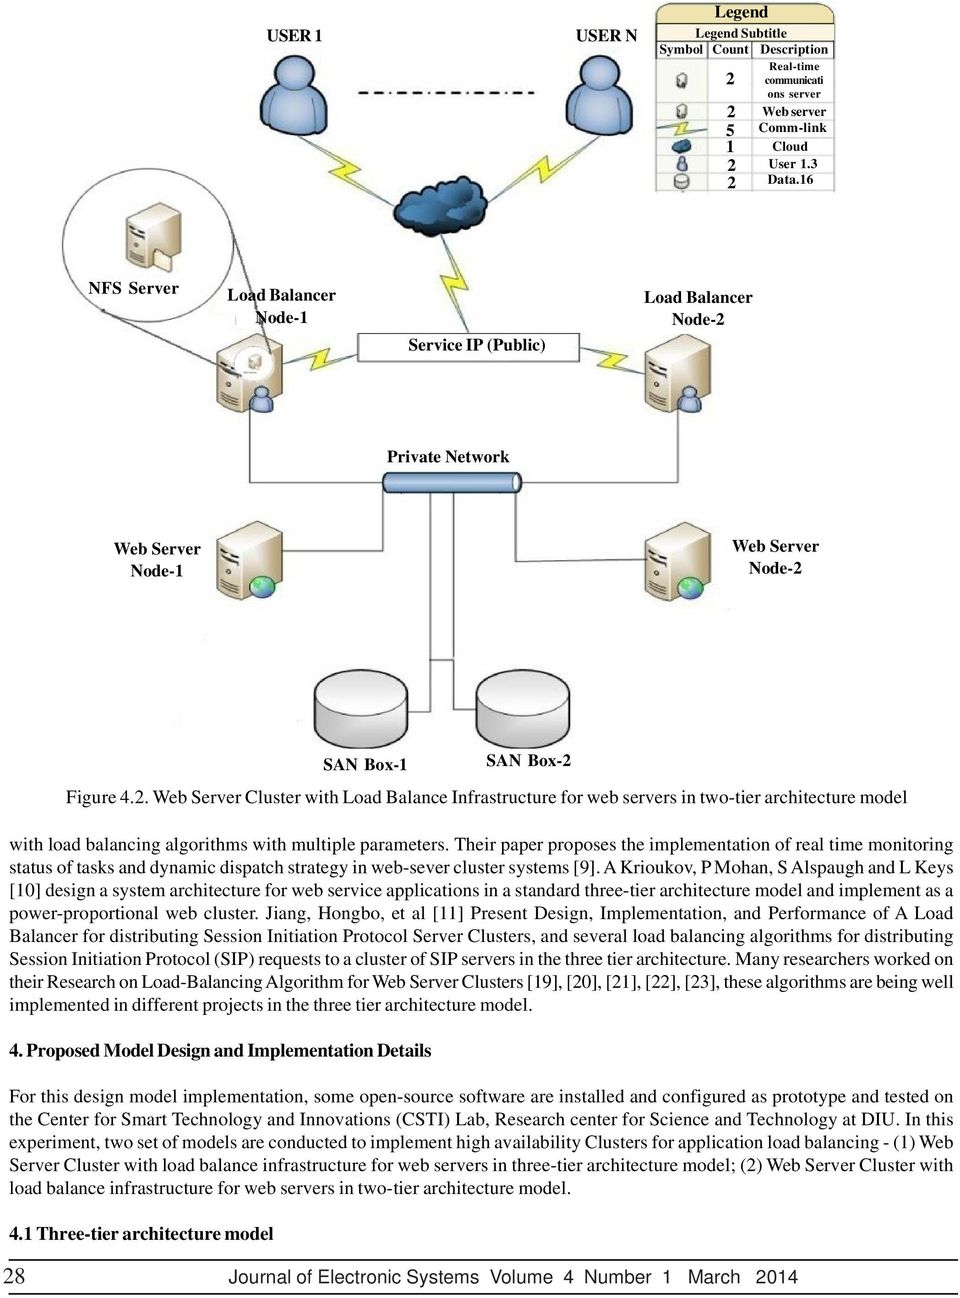 . Web Server Cluster with Load Balance Infrastructure for web servers in two-tier architecture model with load balancing algorithms with multiple parameters.